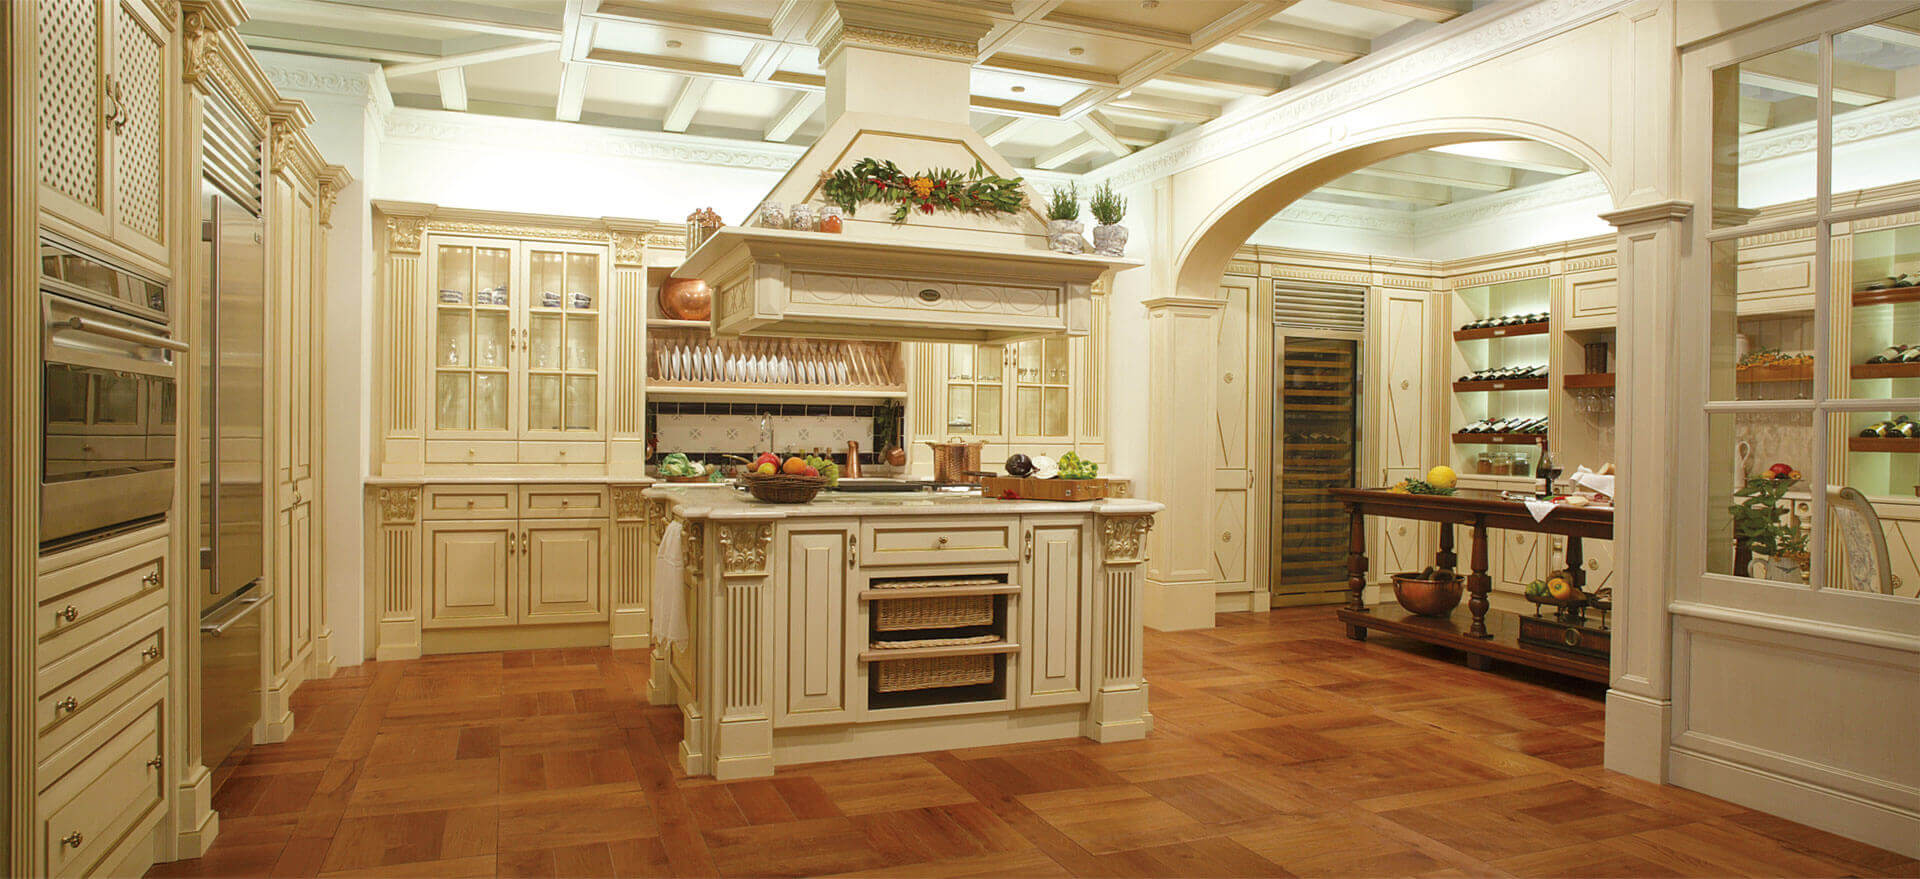 expensive kitchens designs top 65 luxury kitchen design ideas exclusive gallery 3628